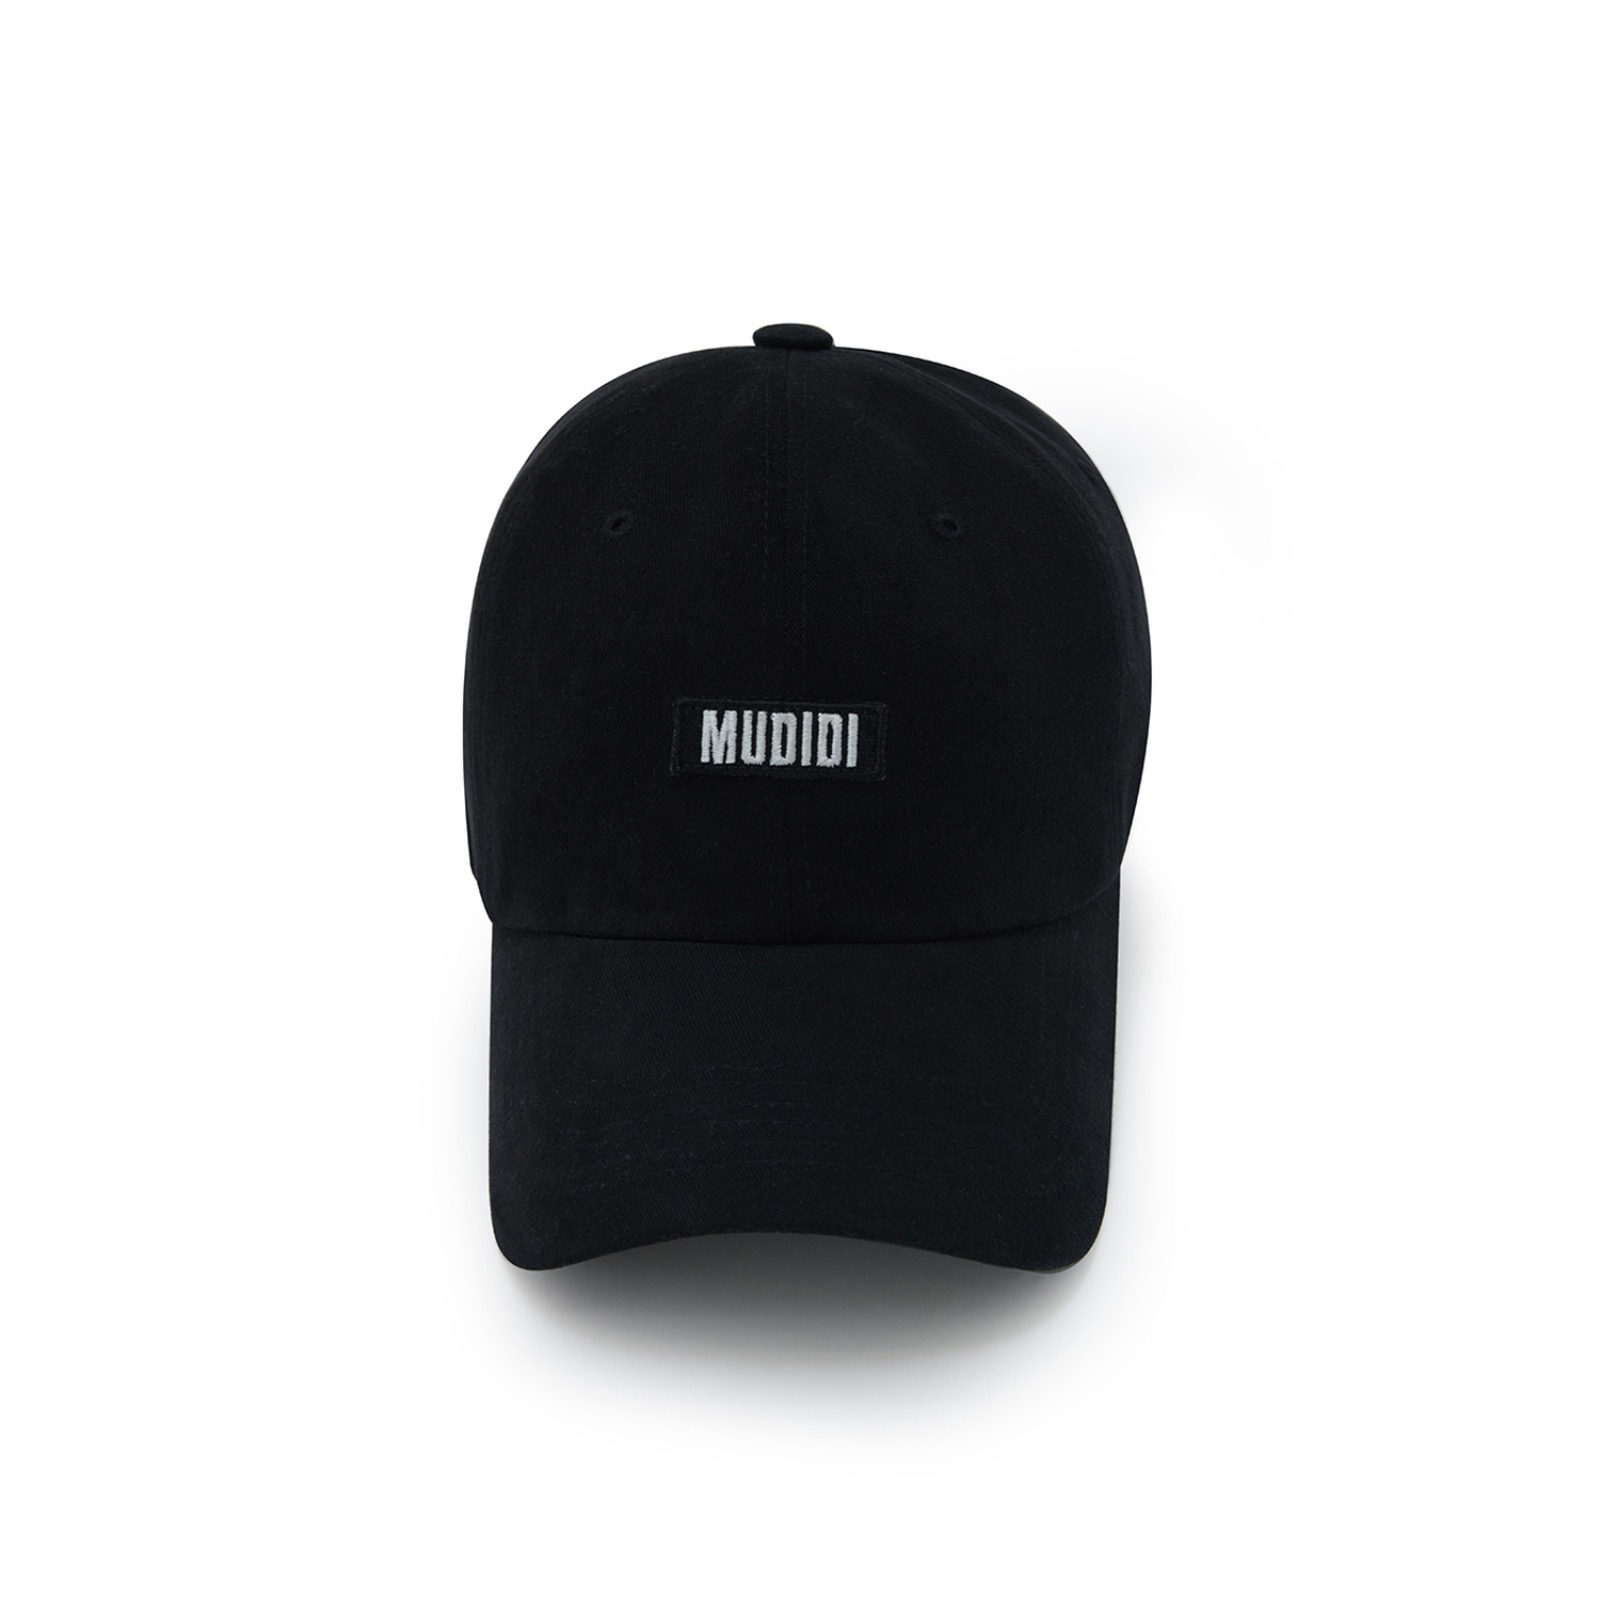 Mudidi basic ball cap 001 Black